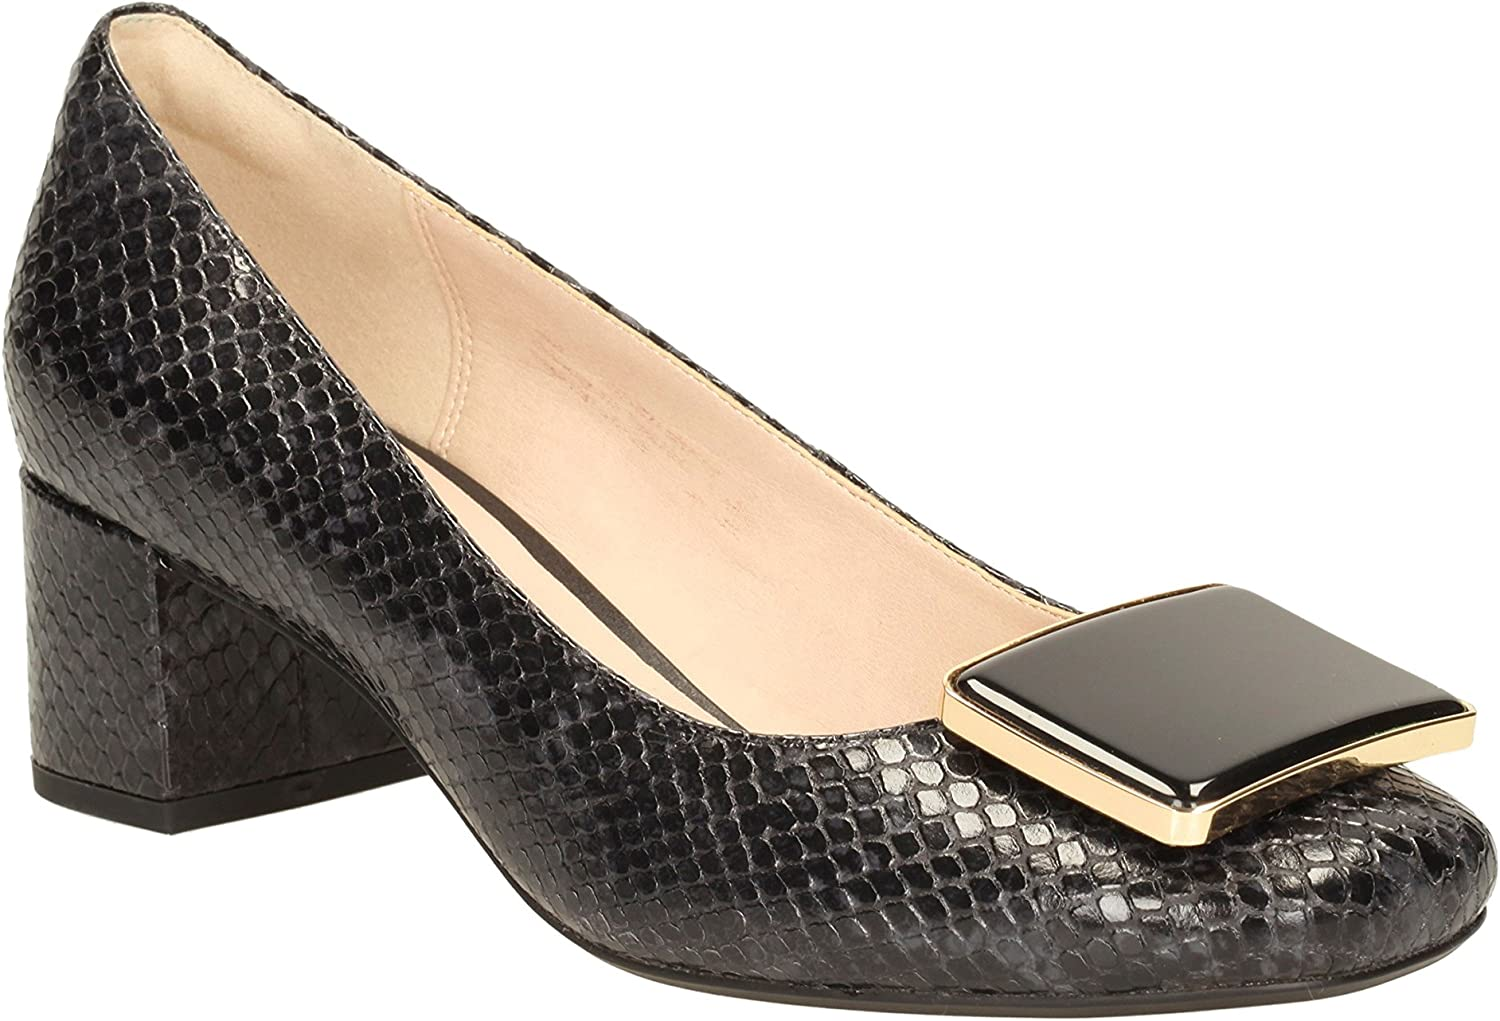 Historiador Inmoralidad montaje  Clarks Women's Block Heel Pumps Shoes Chinaberry Fun Black Snake Leather:  Amazon.co.uk: Shoes & Bags